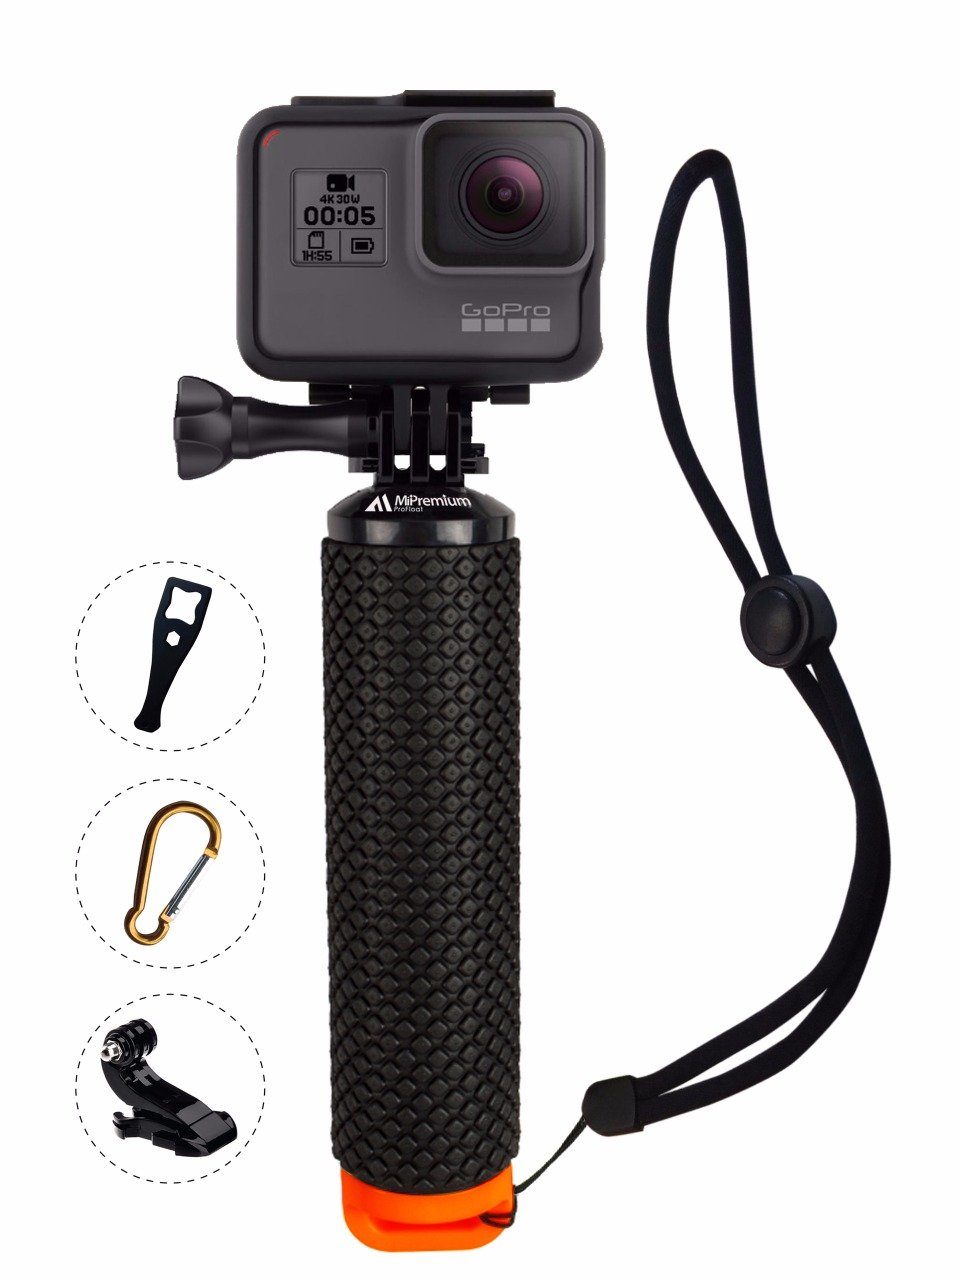 Waterproof Floating Hand Grip Compatible with GoPro Cameras Hero 5 Session Black Silver Hero 2 3 3+ 4. Handler & Handle Mount Accessories Kit & Water for Water Sport and Action Cameras (Orange)